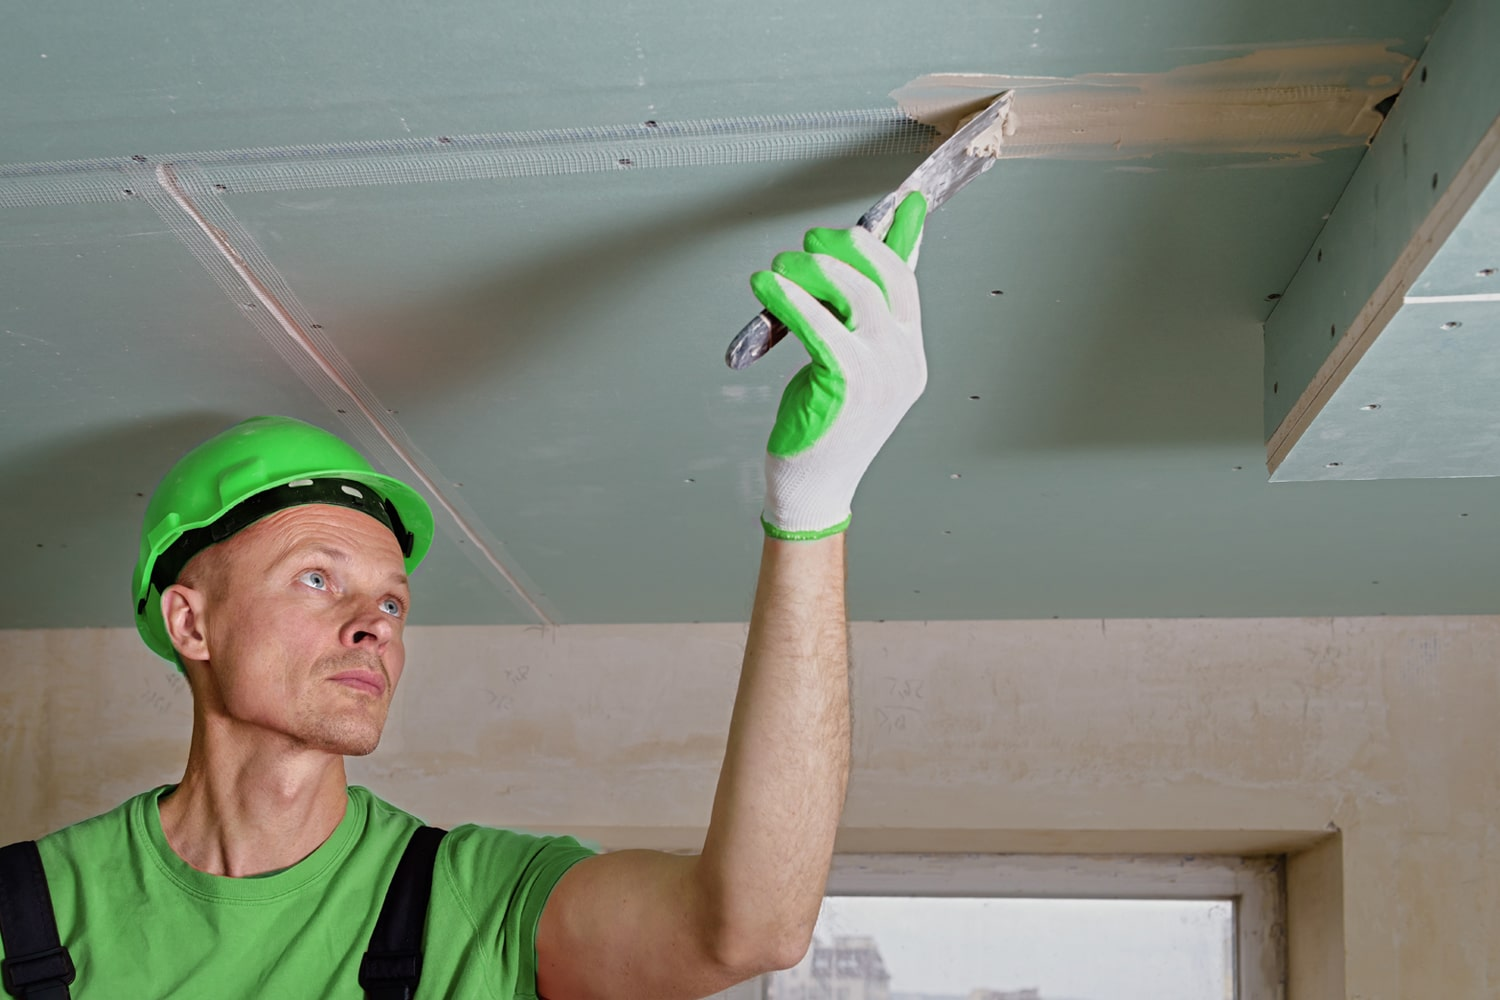 Man fixing ceiling